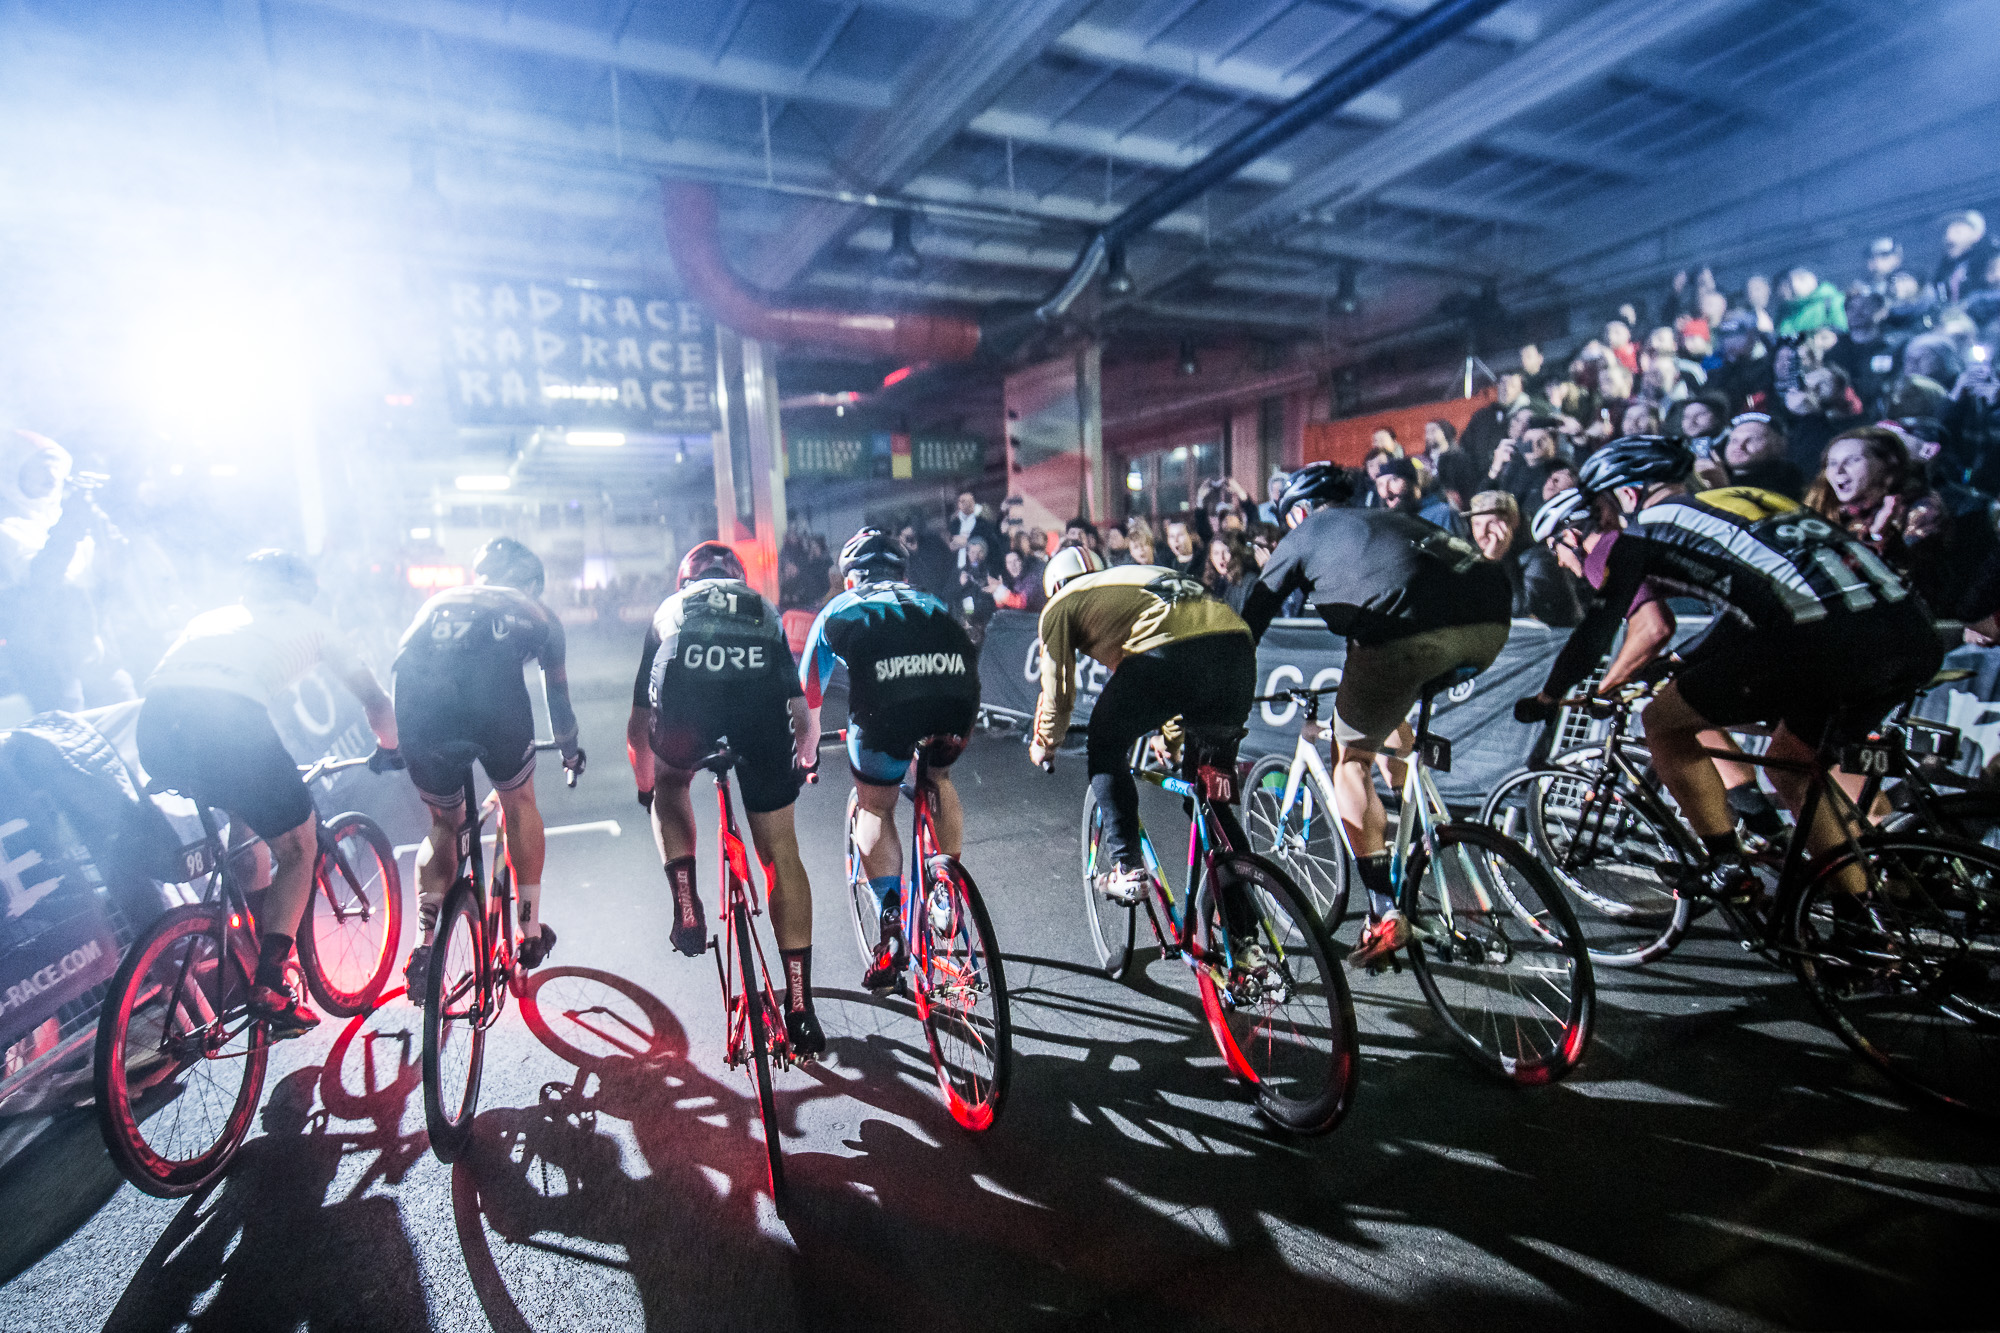 INFO: - RAD RACEing at it's finest! Some of you know already what we're talking about but for everyone else here is a short summary: A go-kart race track in Berlin, 128 male competitors, 40 female riders, fixed-gear only – until only one is still standing!